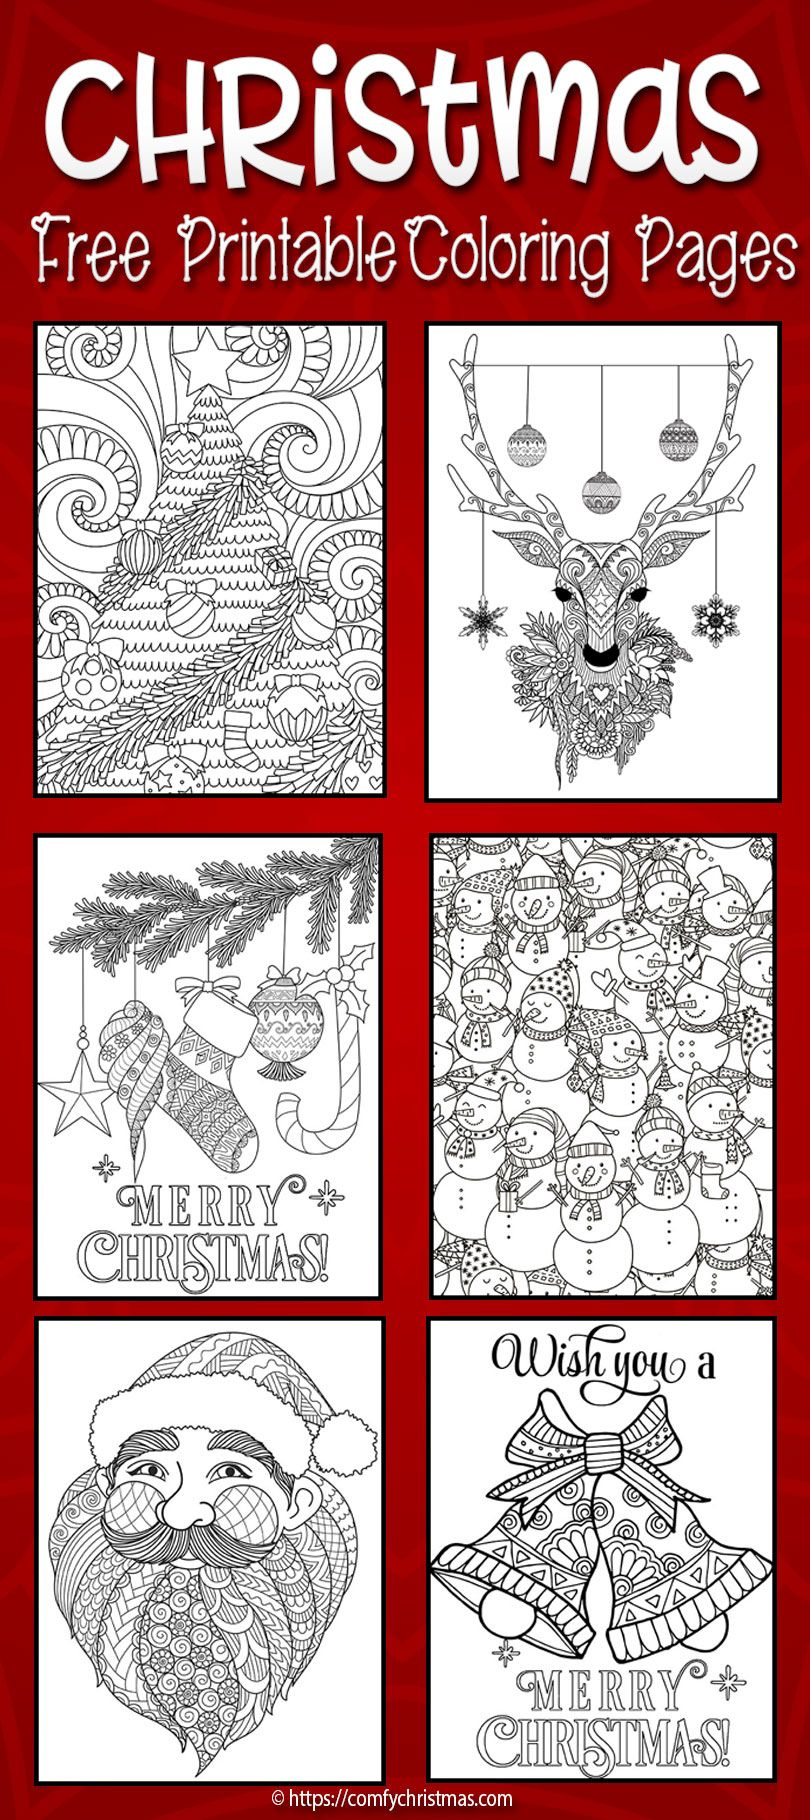 Download Free Printable Christmas Coloring Pages for Adults and Kids ...